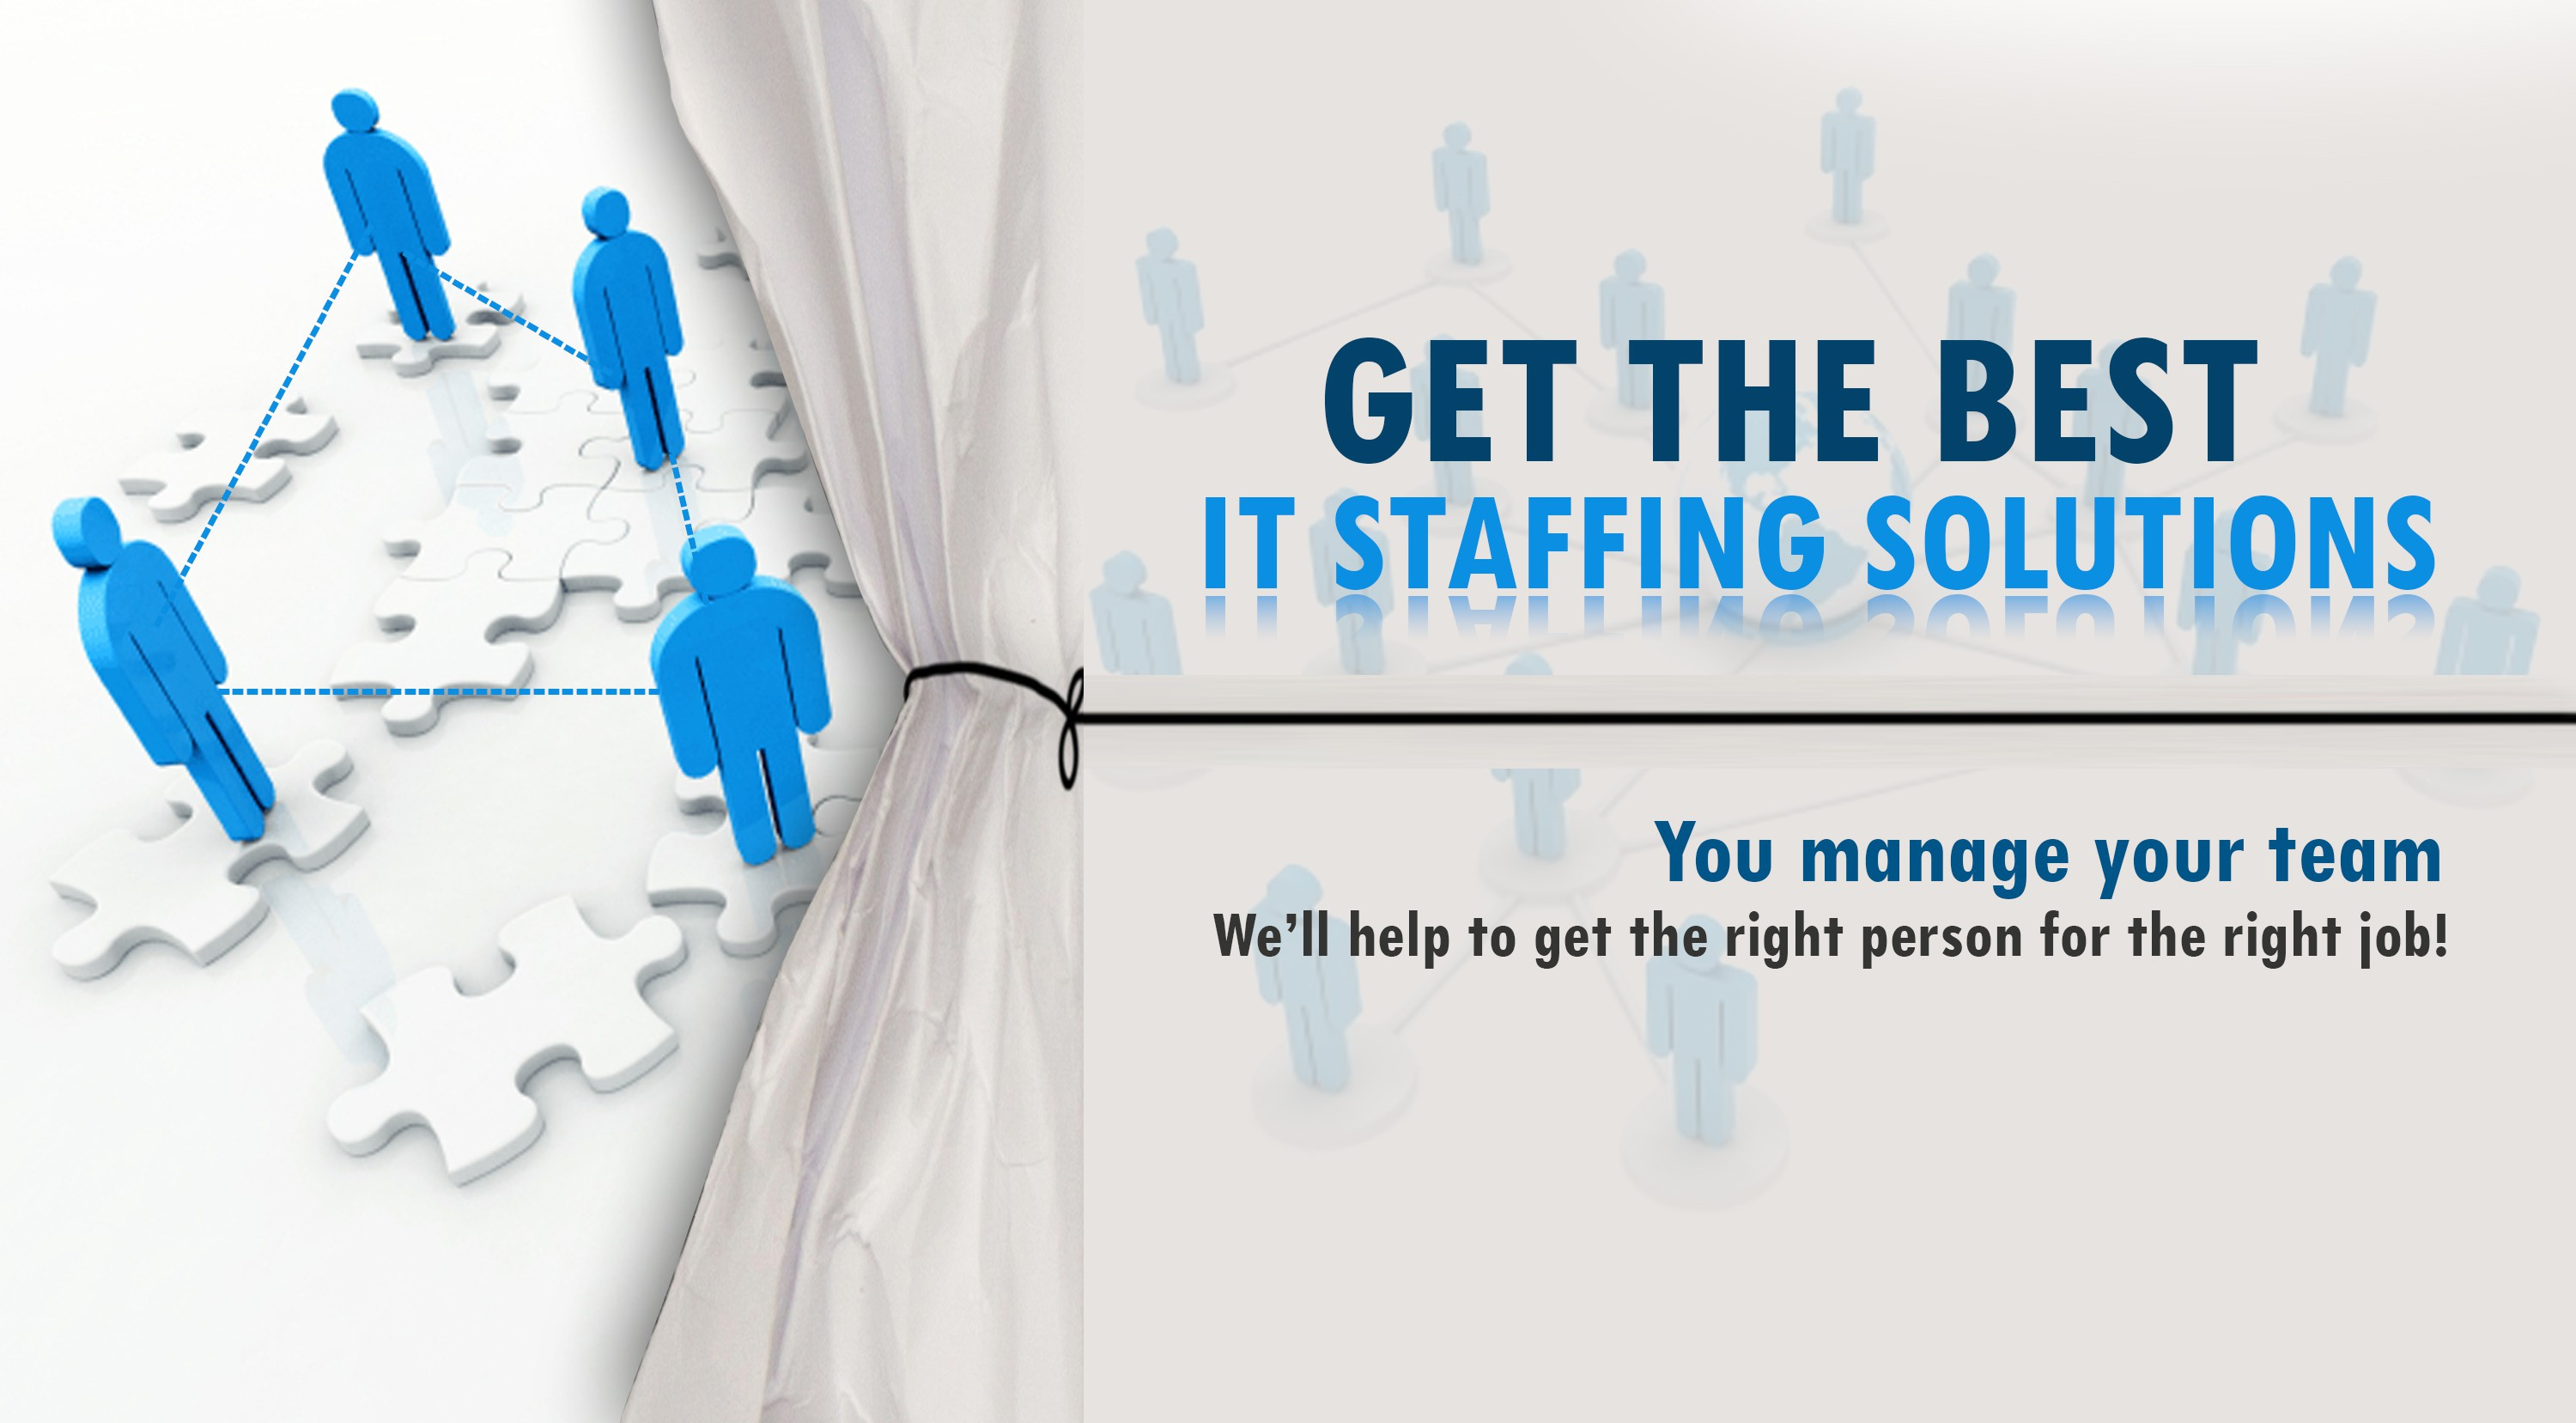 Top It Staffing And Recruiting Trends In 2015 Mamsys